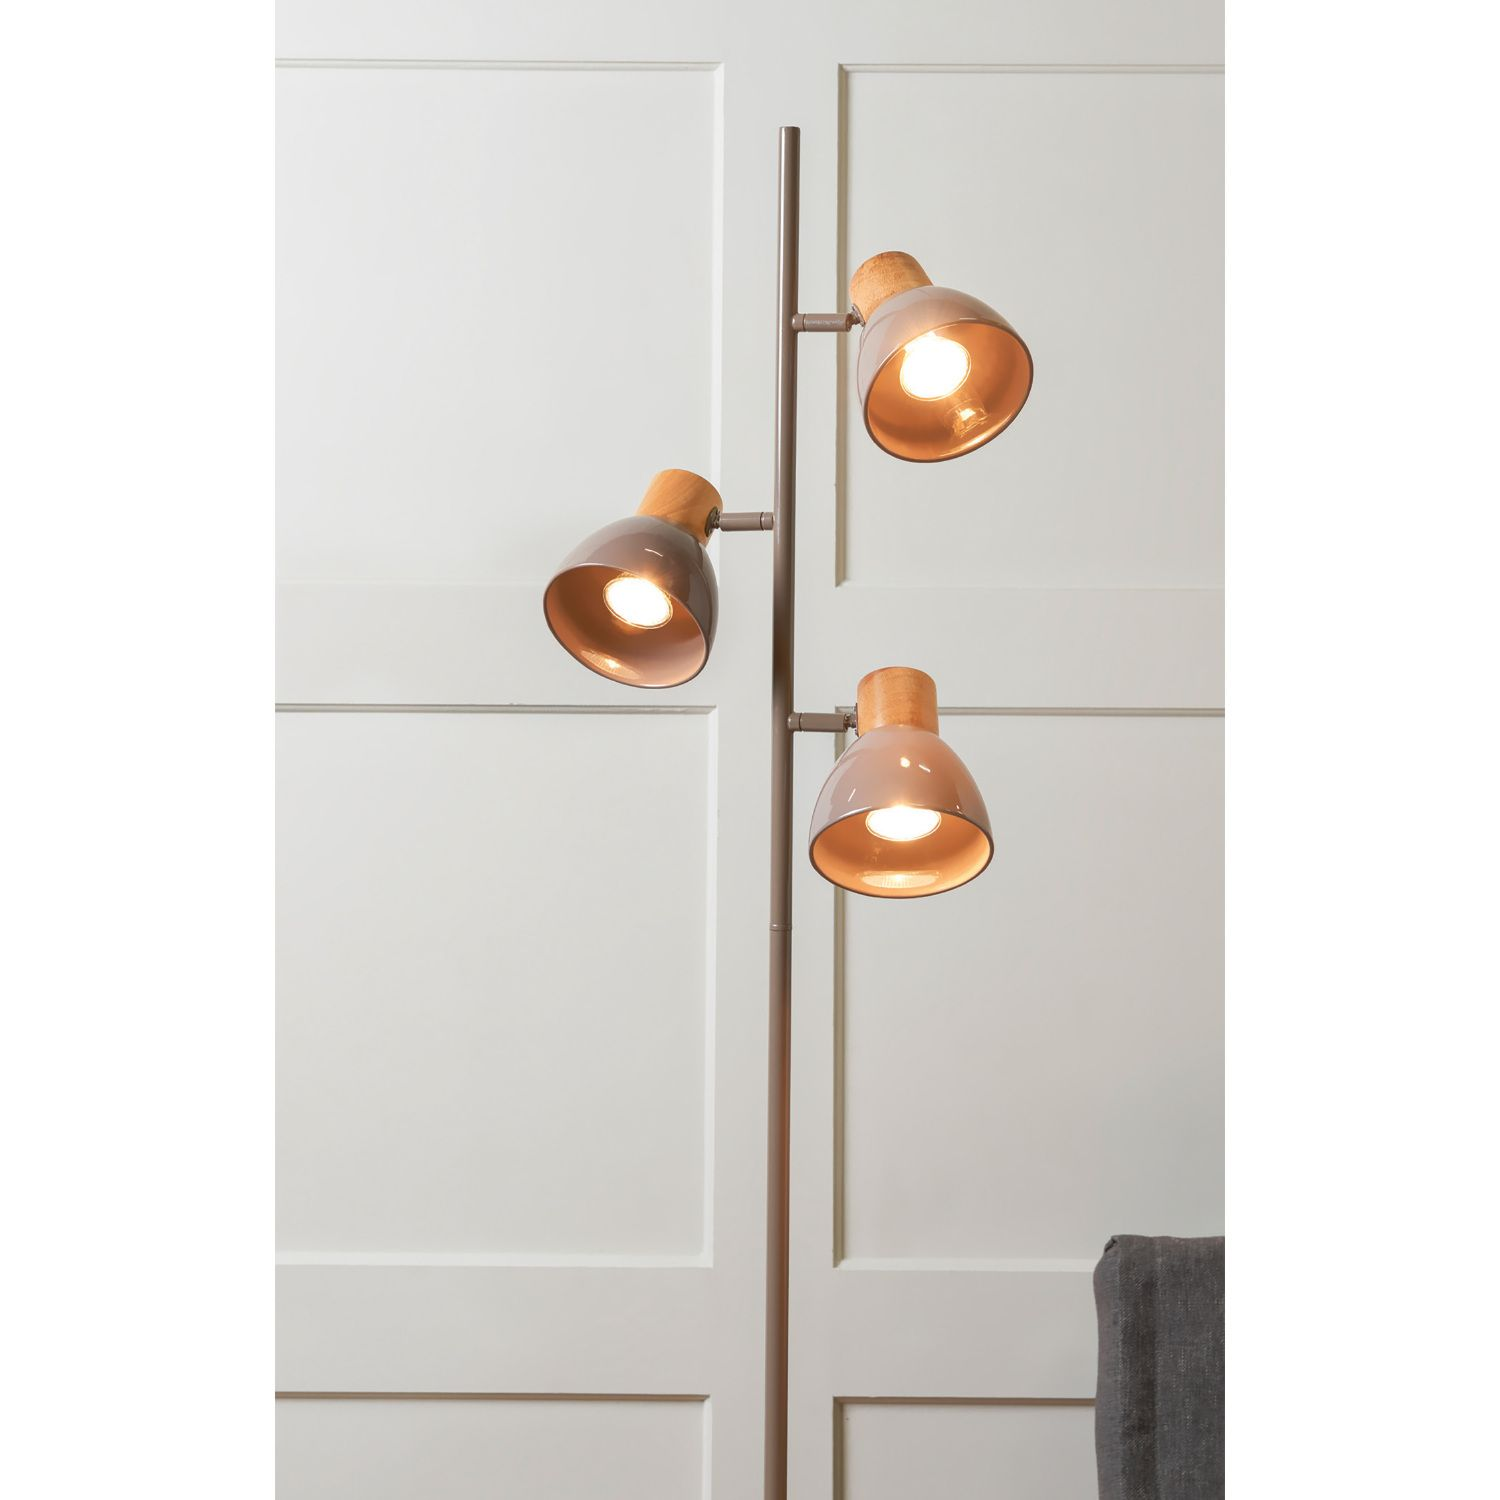 Image result for wood floor lamp three lights | Upper story ...